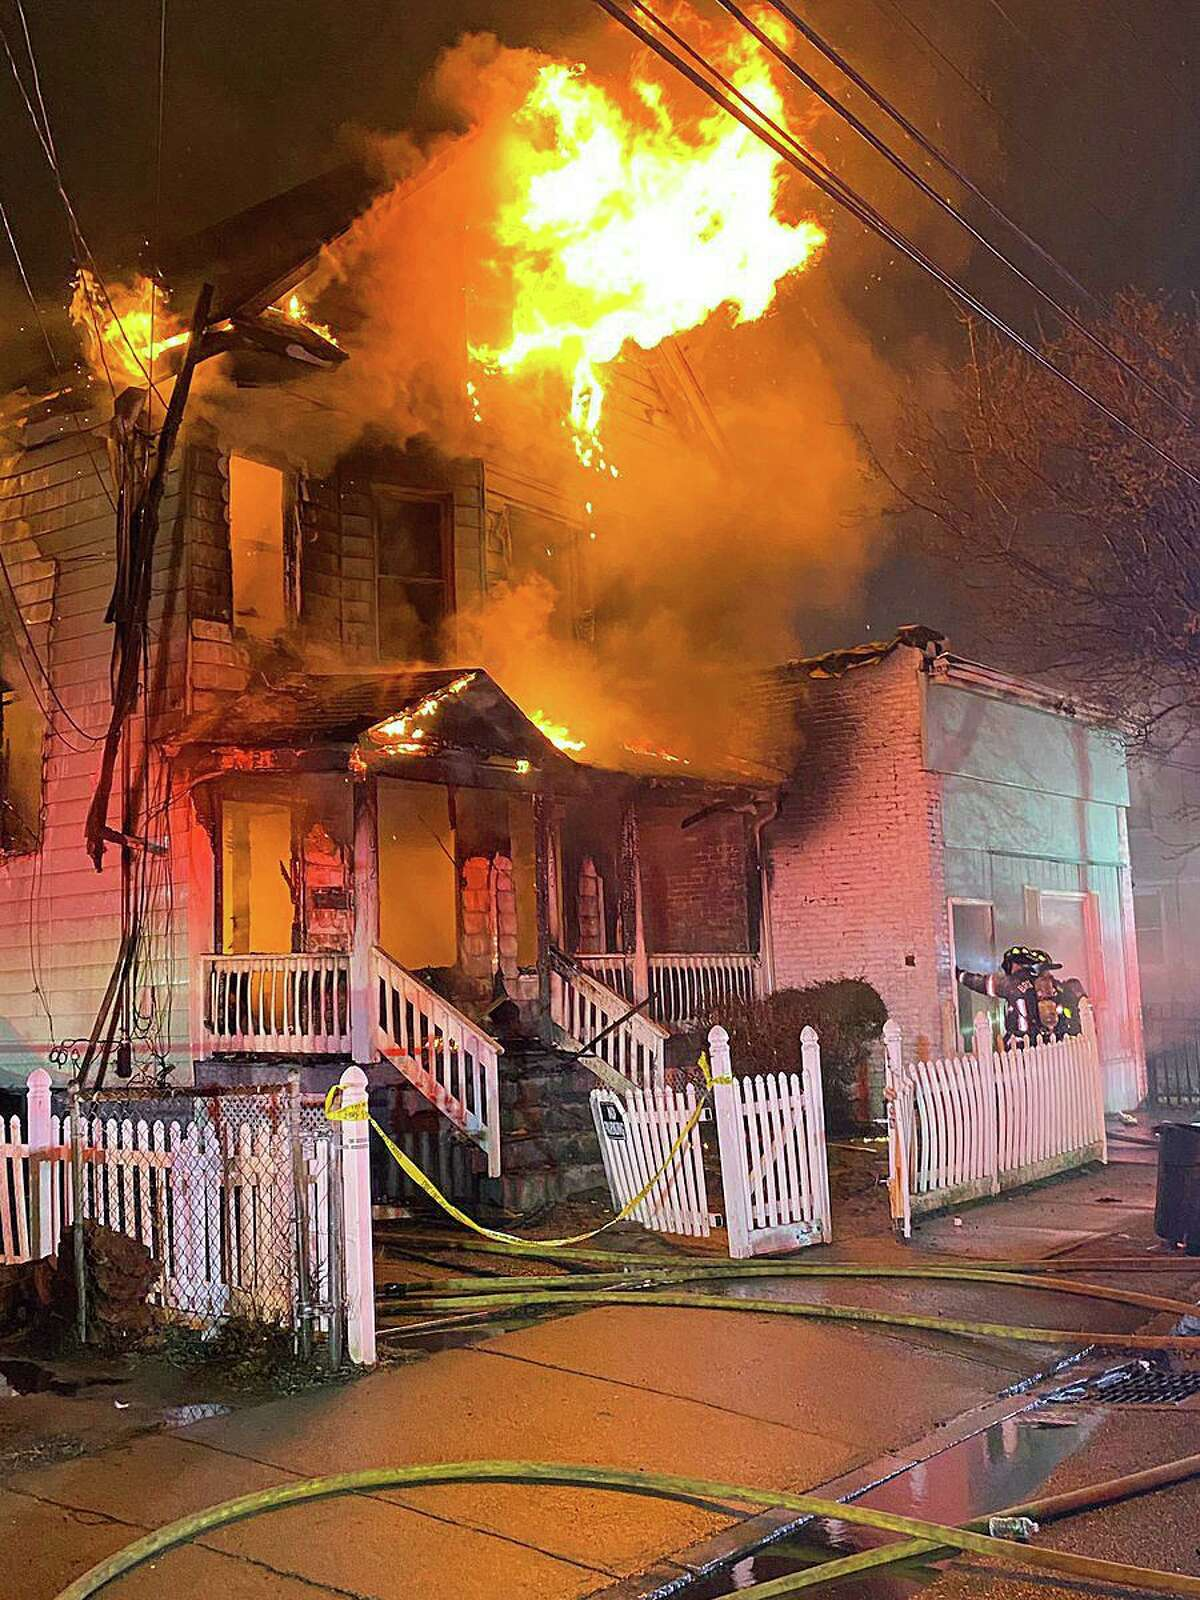 Five people escaped unharmed after a fire tore through a building in the the 1000th block of Stratford Avenue early Sunday morning.